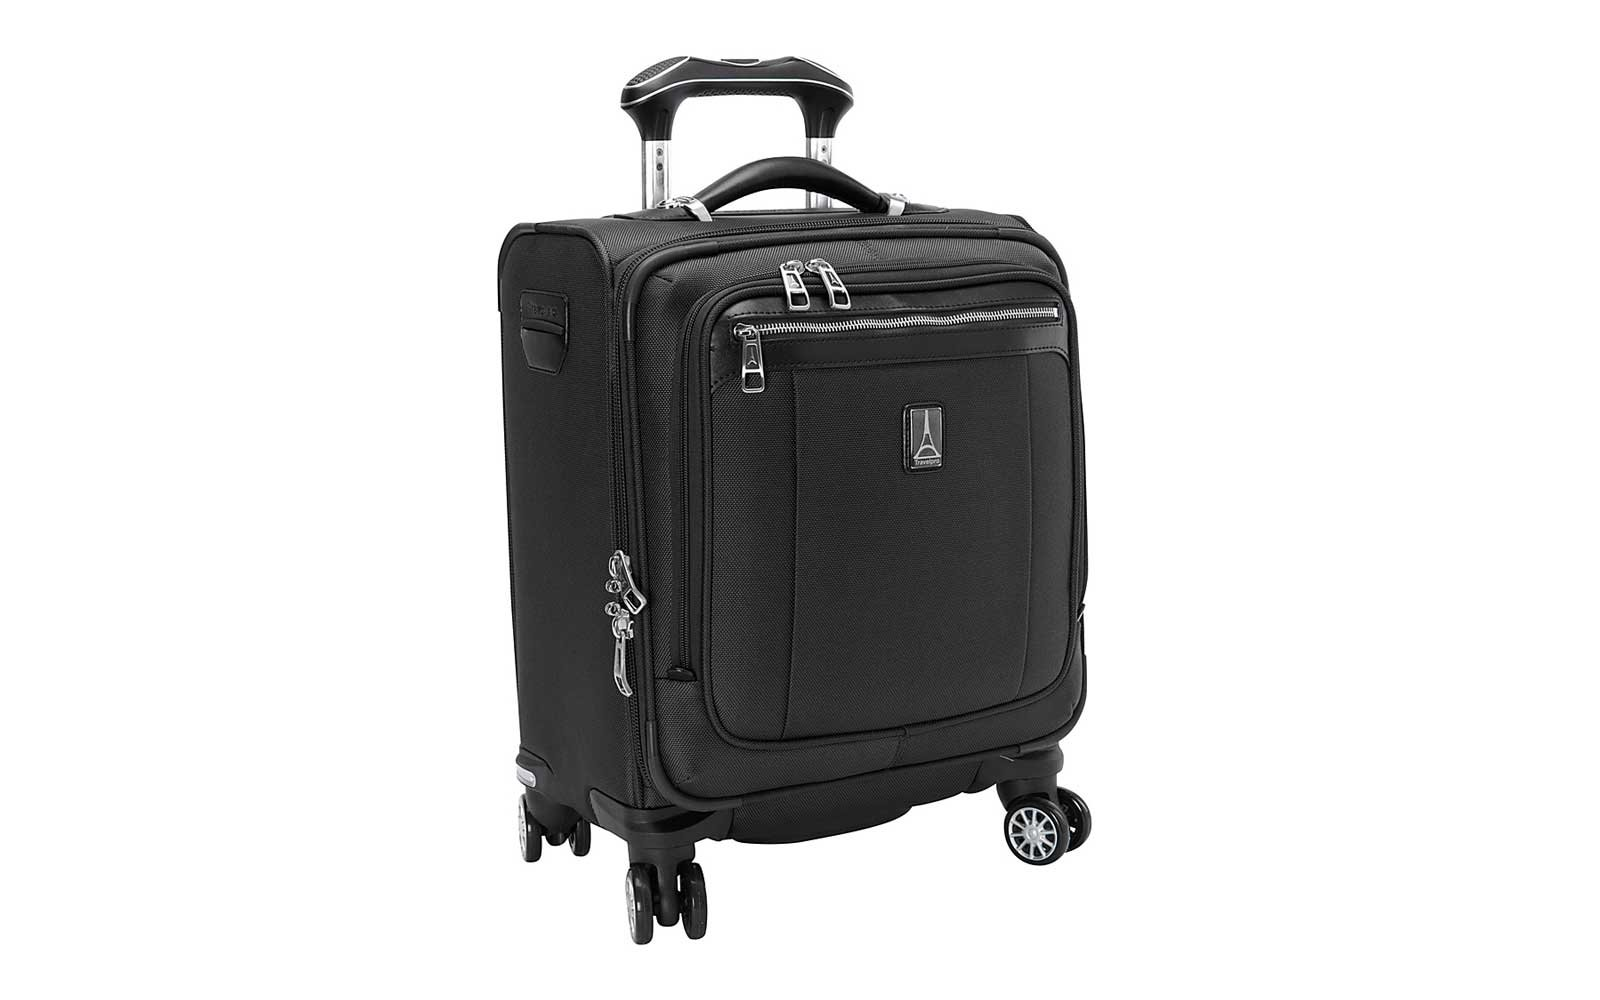 The Best Underseat Luggage to Carry On  6377e5dd3d6e0